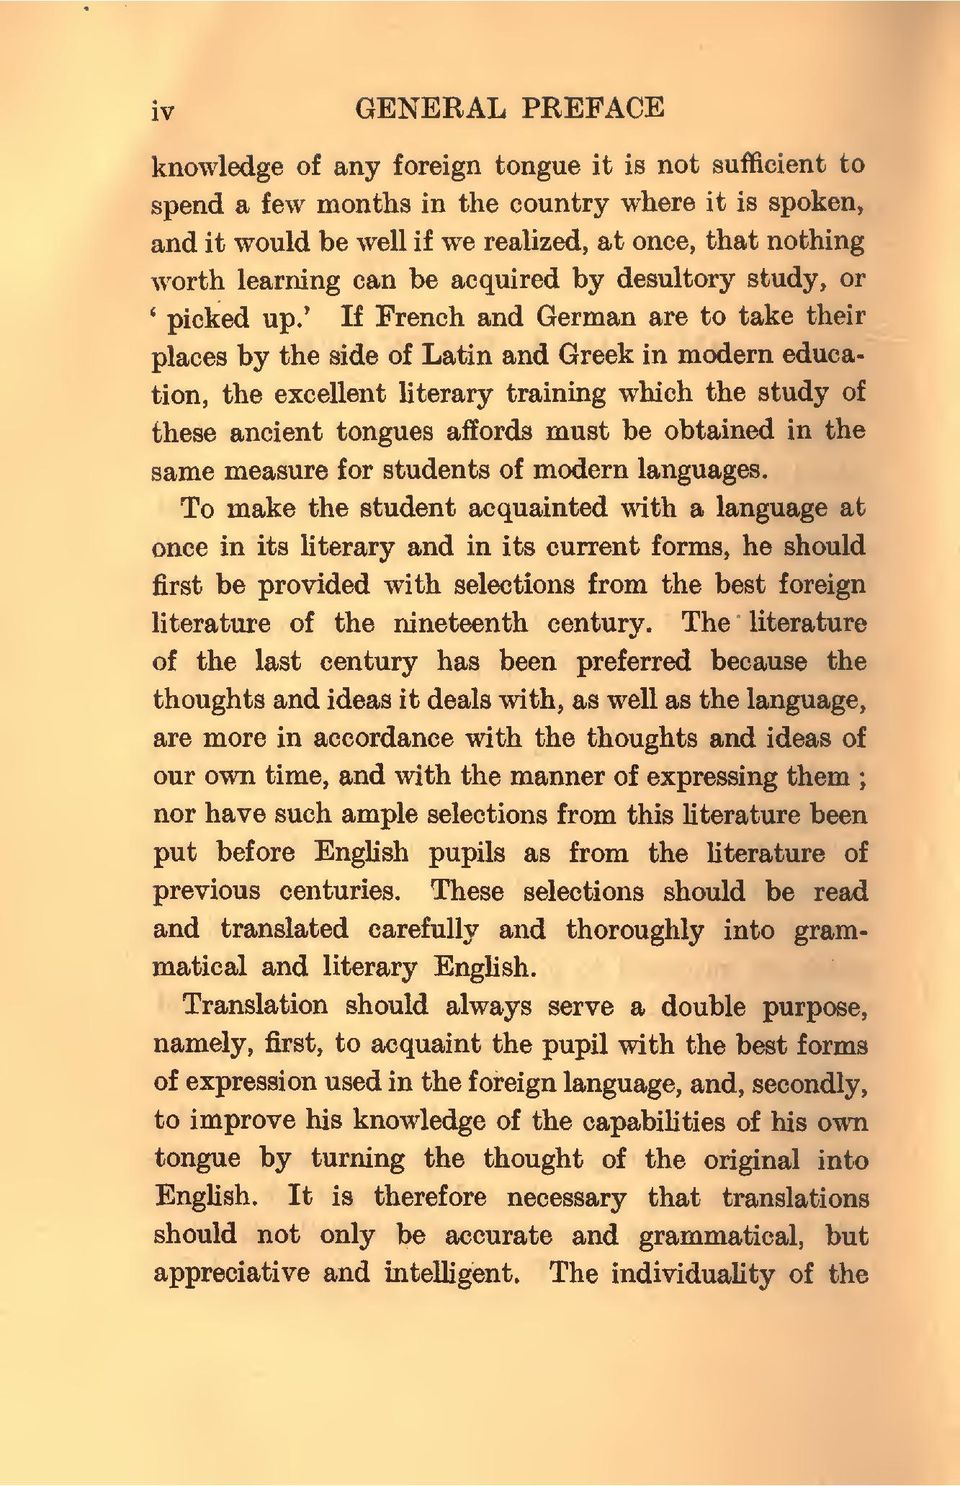 ' If French and German are to take their places by the side of Latin and Greek in modem éducation, the excellent literary training which the study of thèse ancient tongues afïords must be obtained in